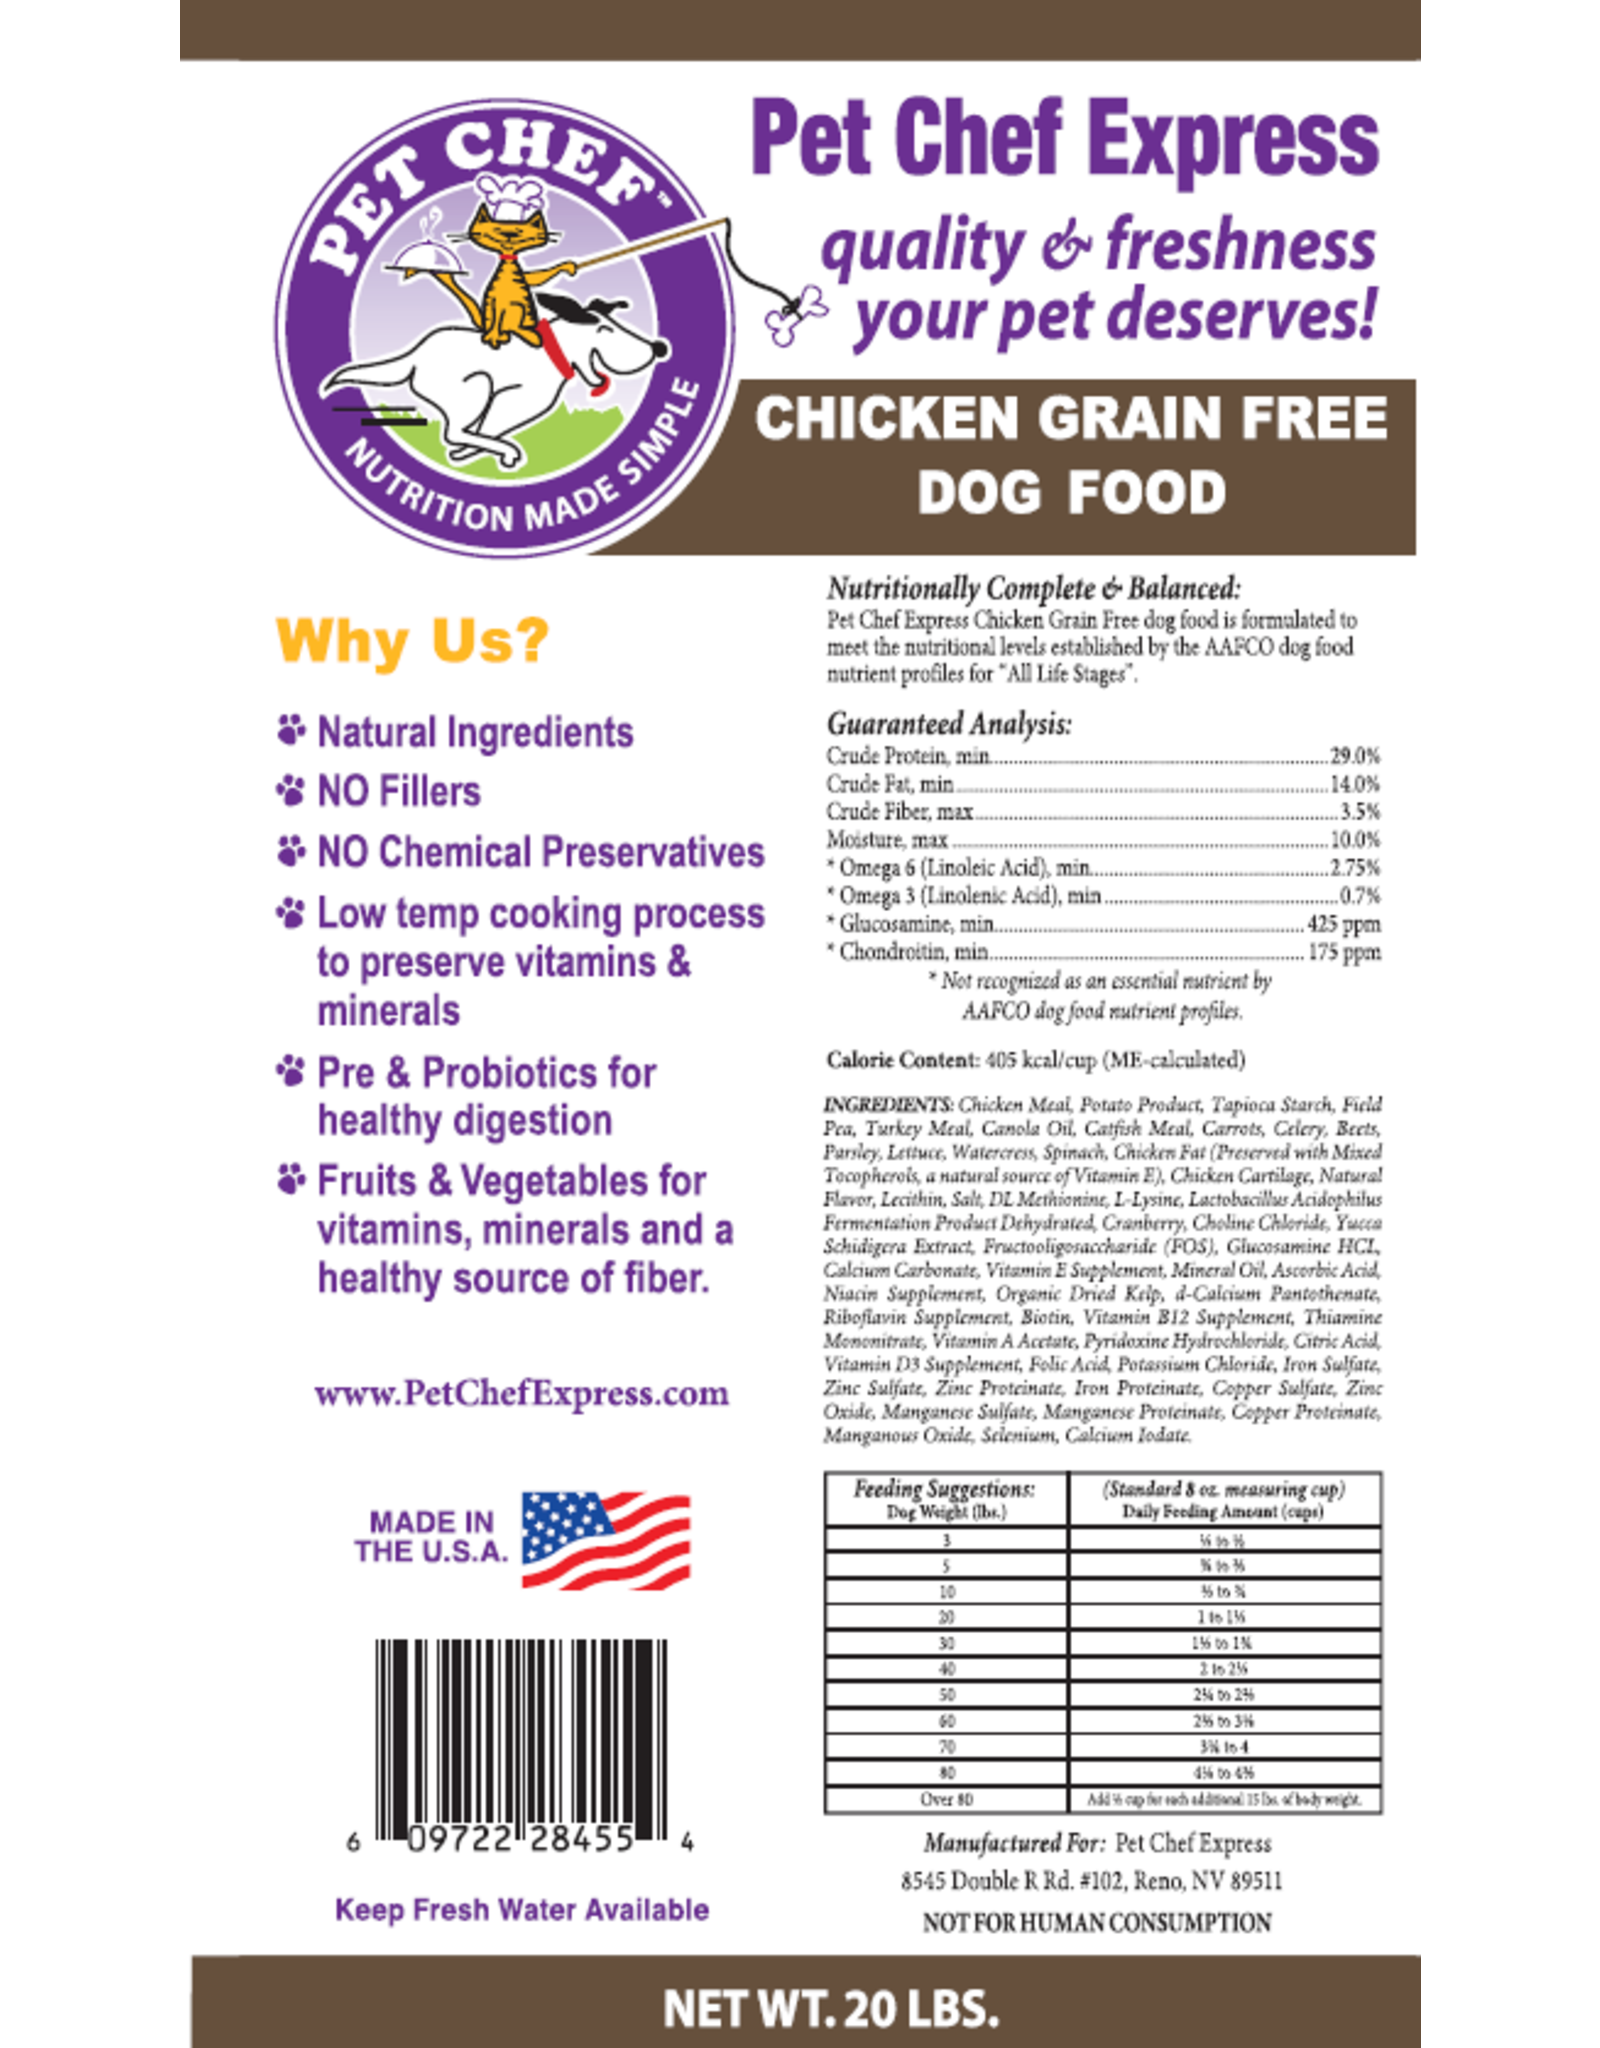 Pet Chef Express PCE Grain Free Chicken & Field Pea